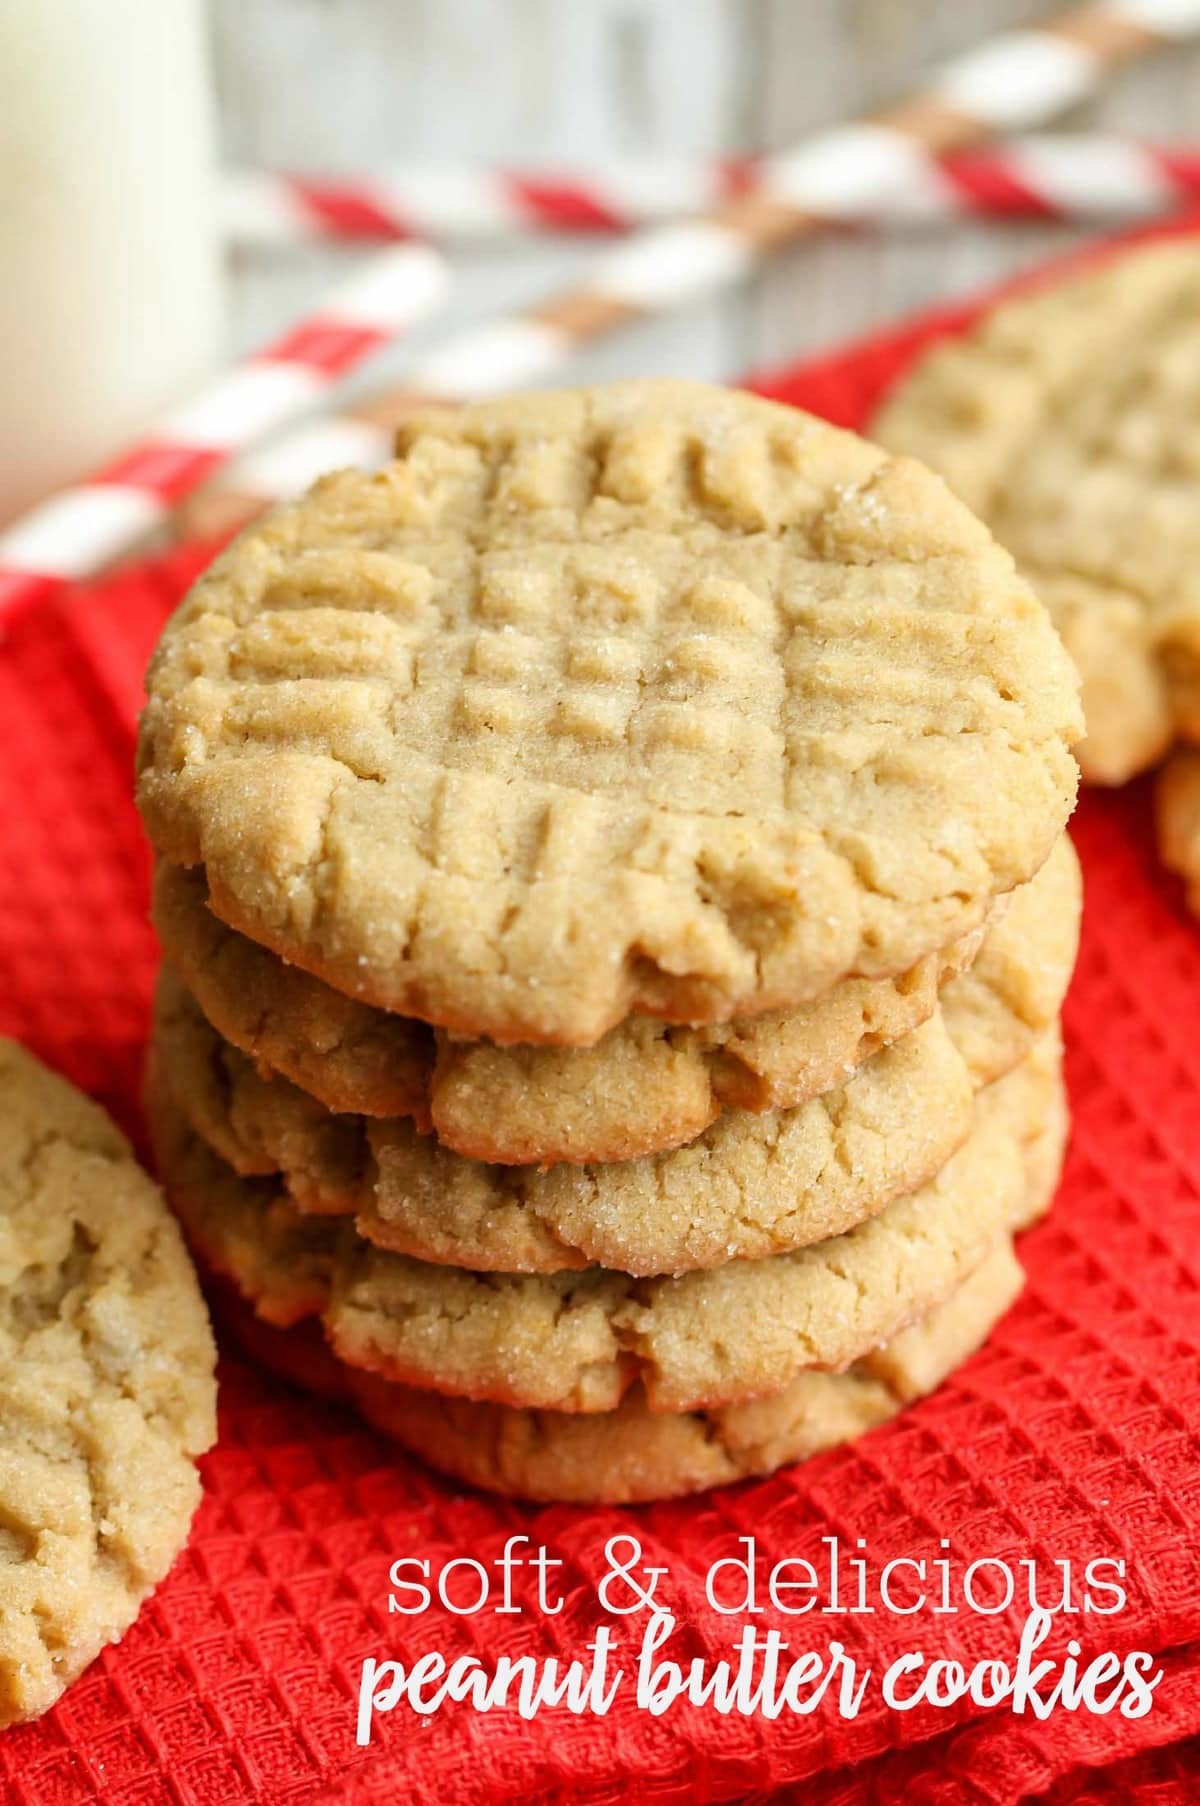 Easy Soft Peanut Butter Cookies Lil Luna